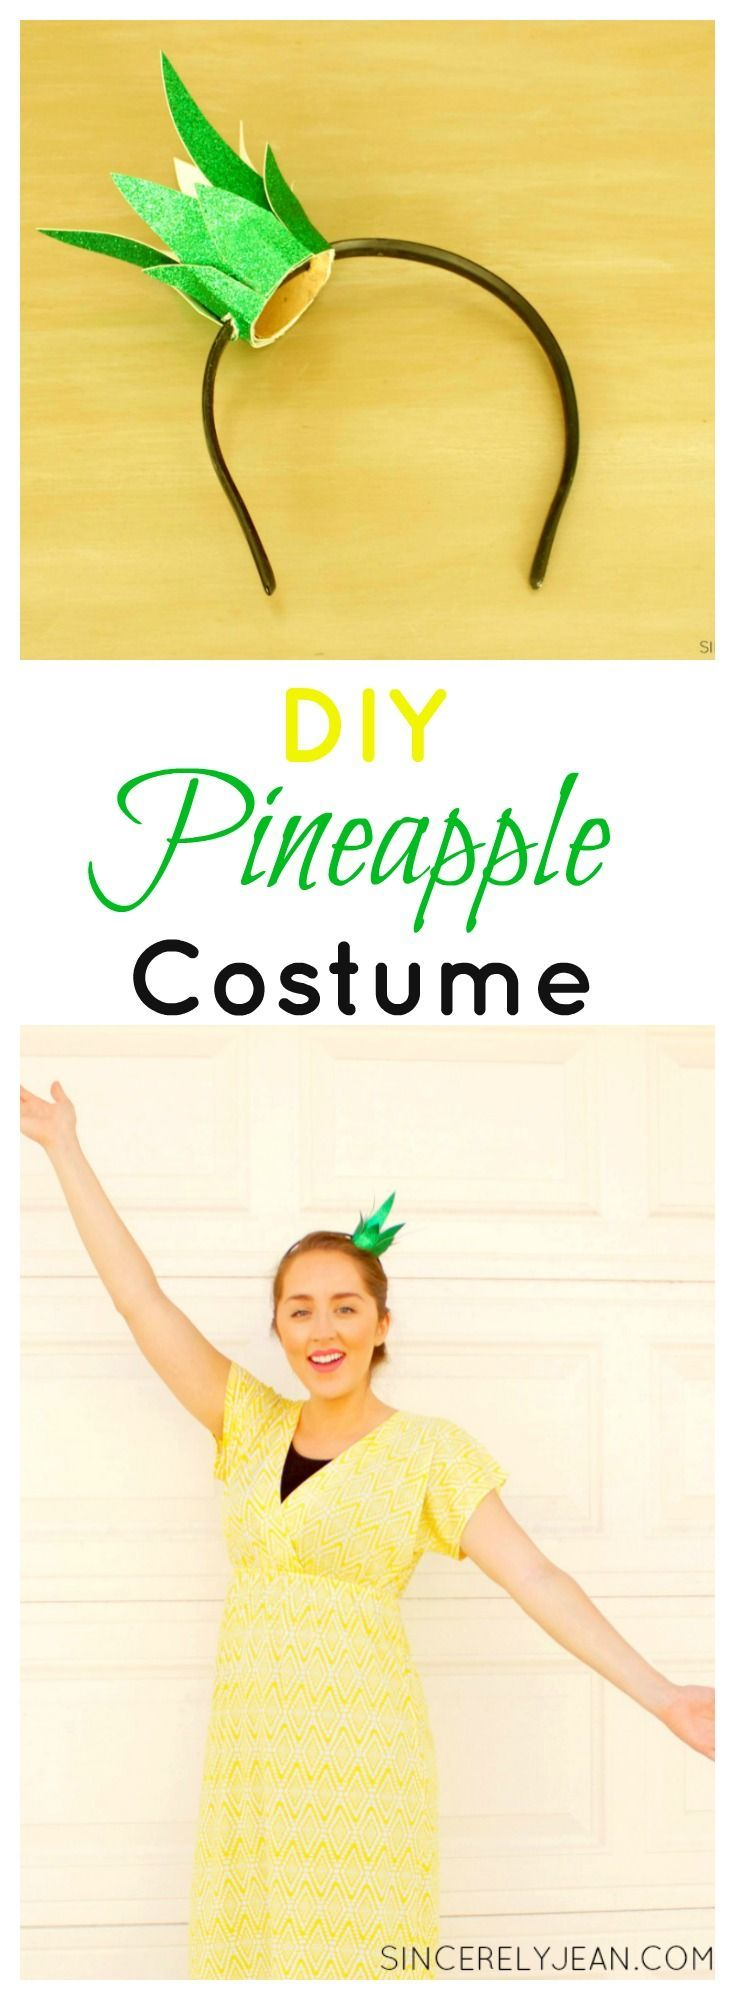 25+ best ideas about Carnaval cruise on Pinterest | Pirate costume ...